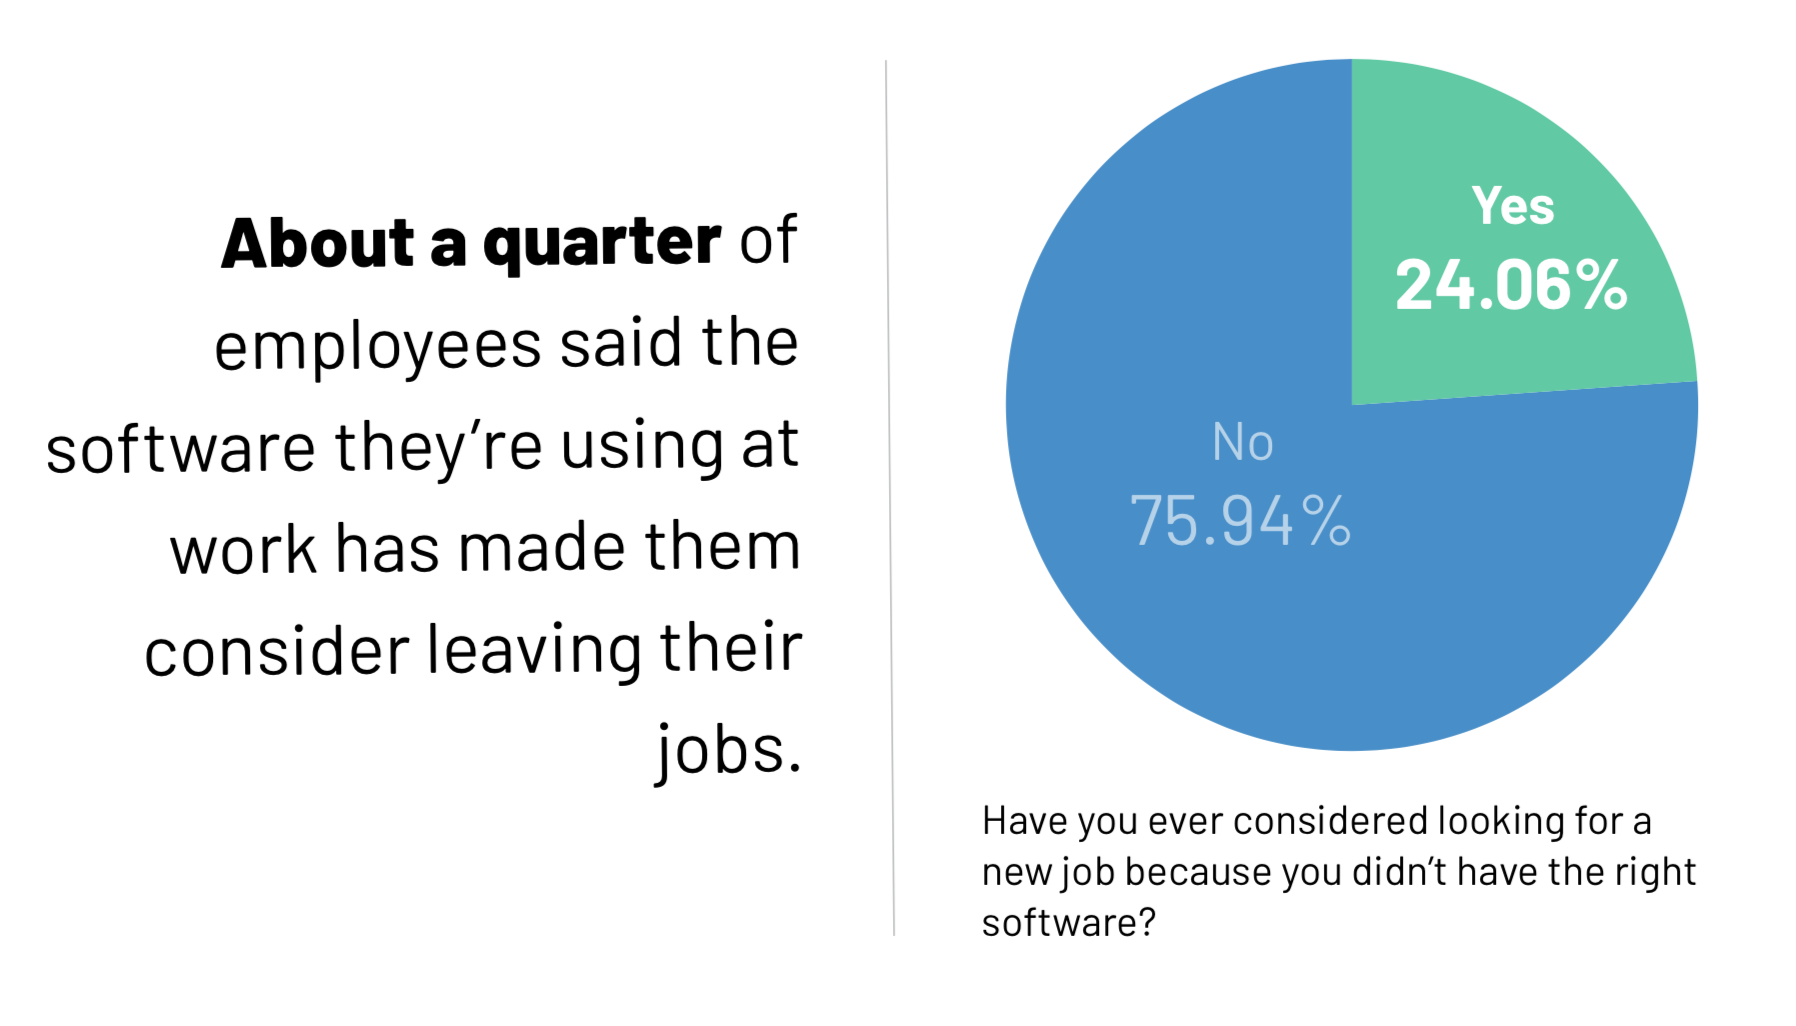 The wrong software can make employees consider leaving their jobs